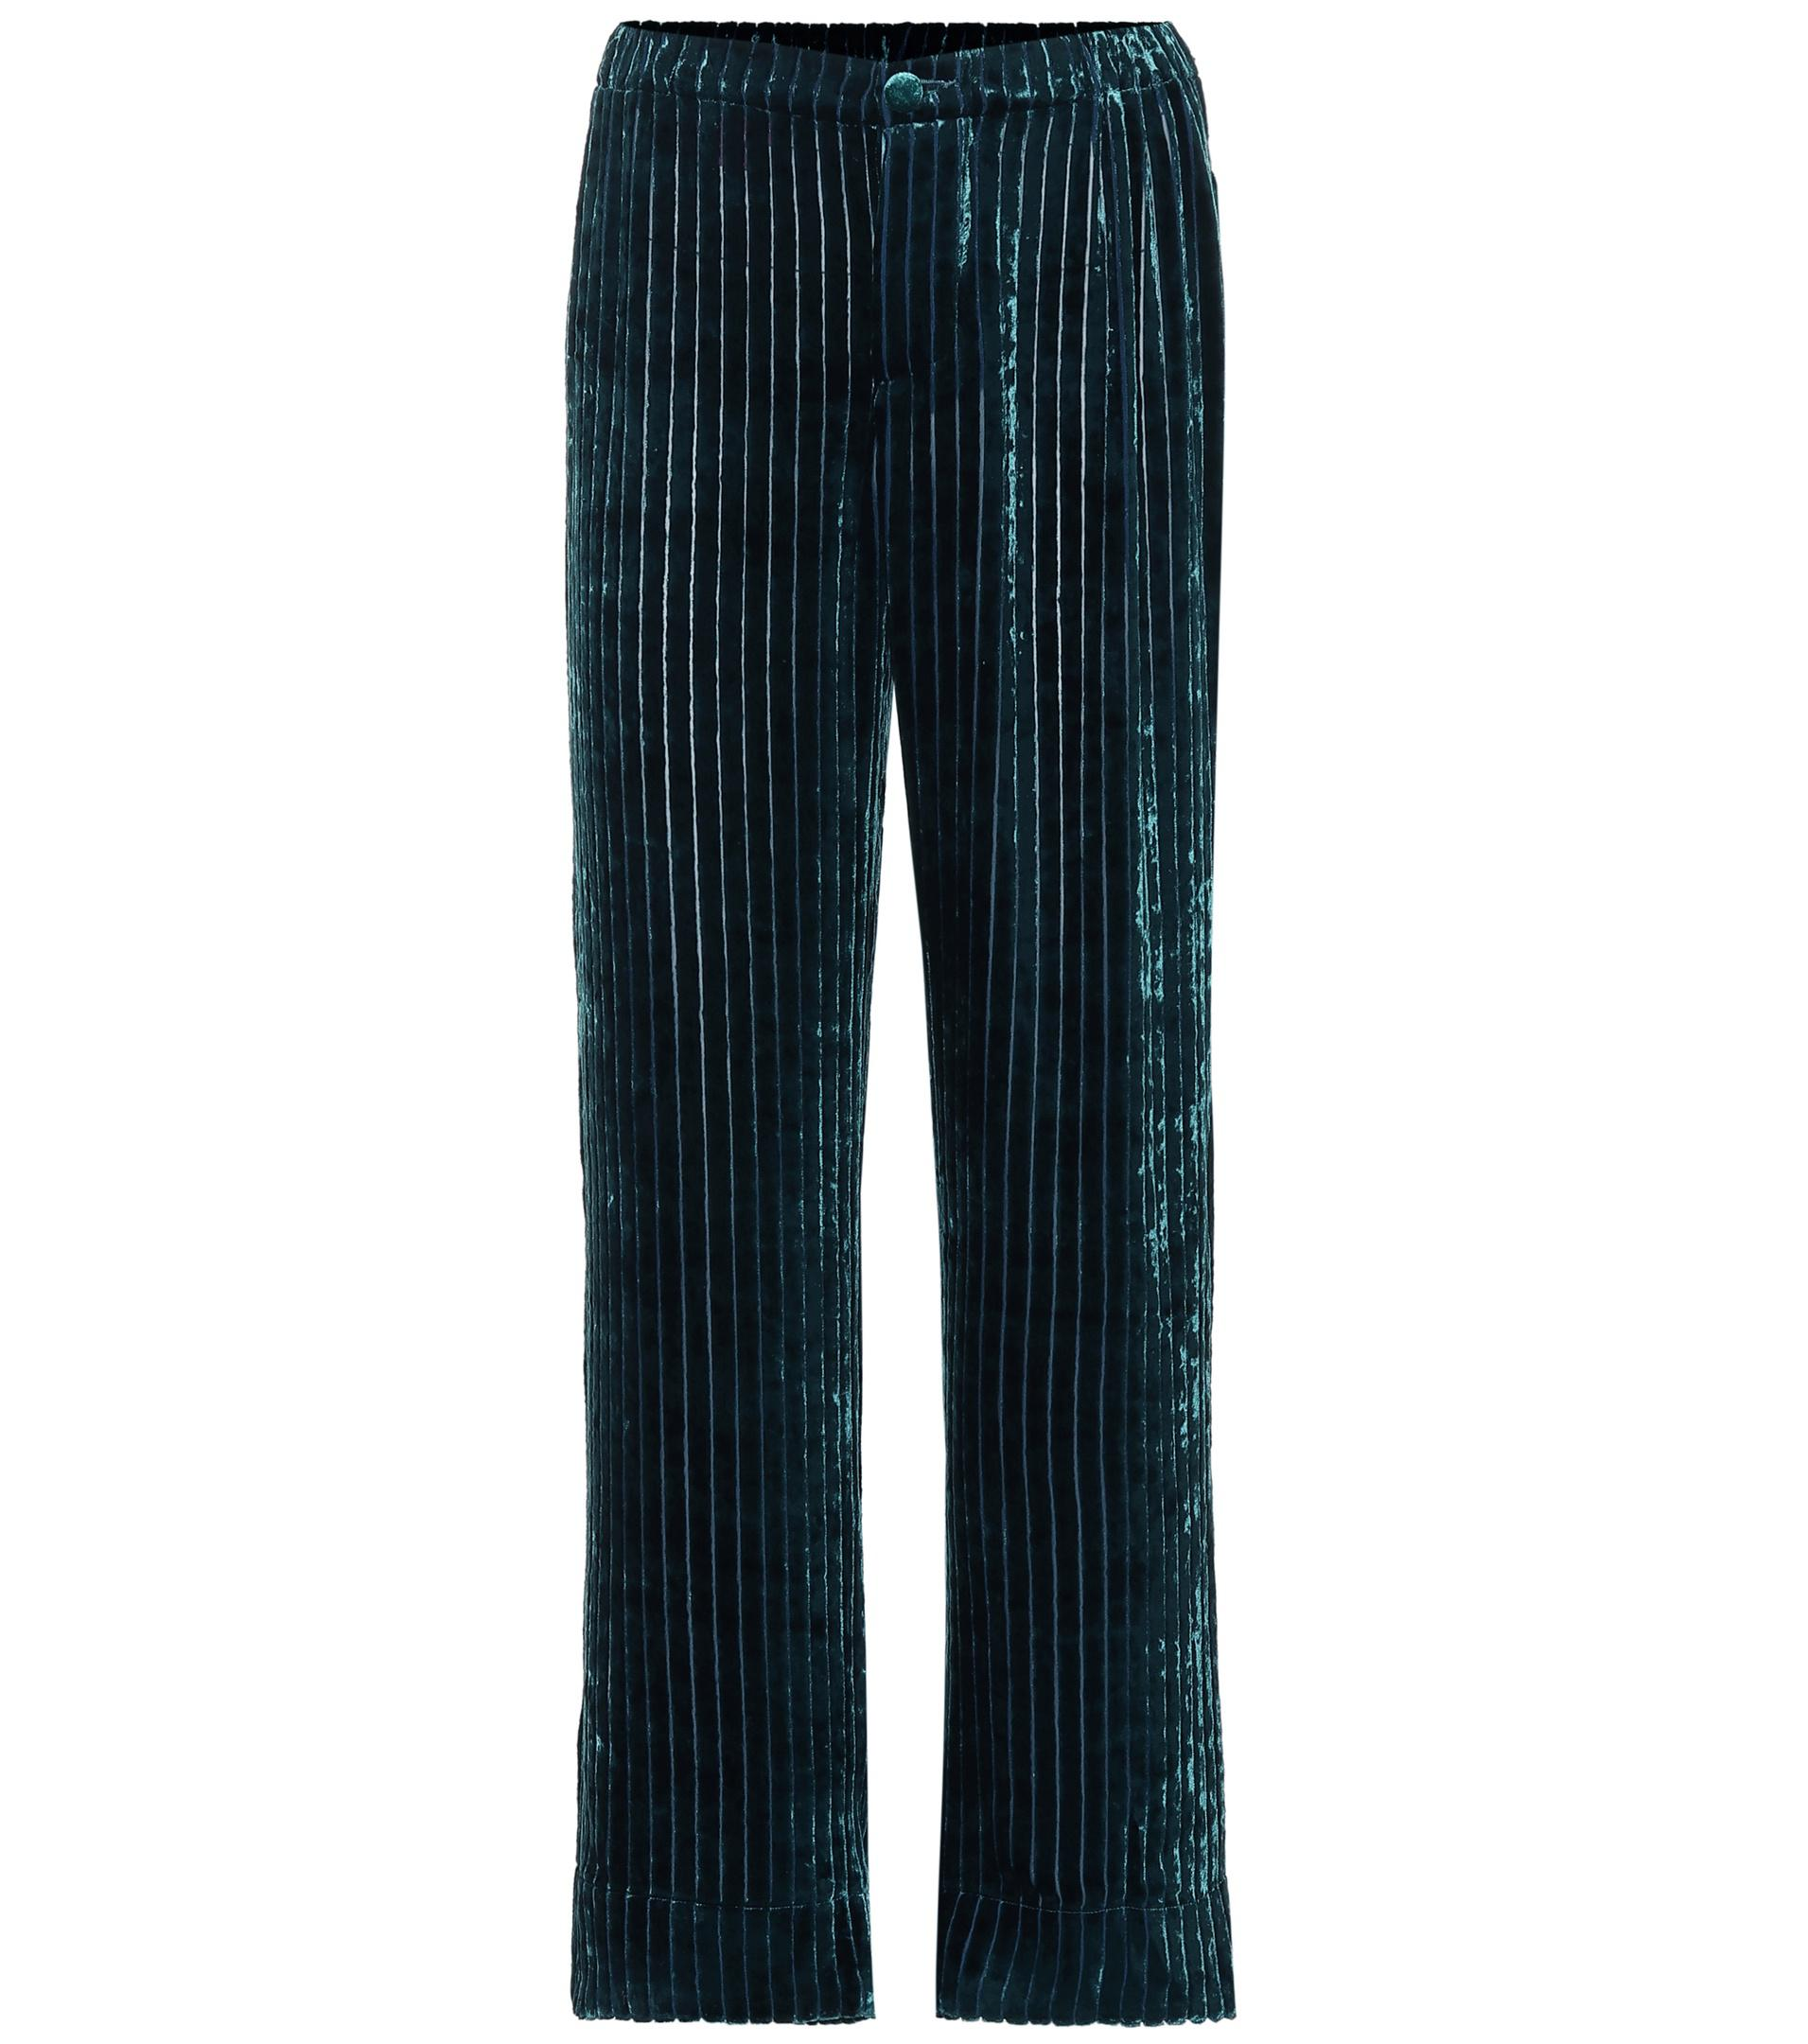 2d354a5bf F.R.S For Restless Sleepers Etere Velvet Corduroy Pajama Pants in ...